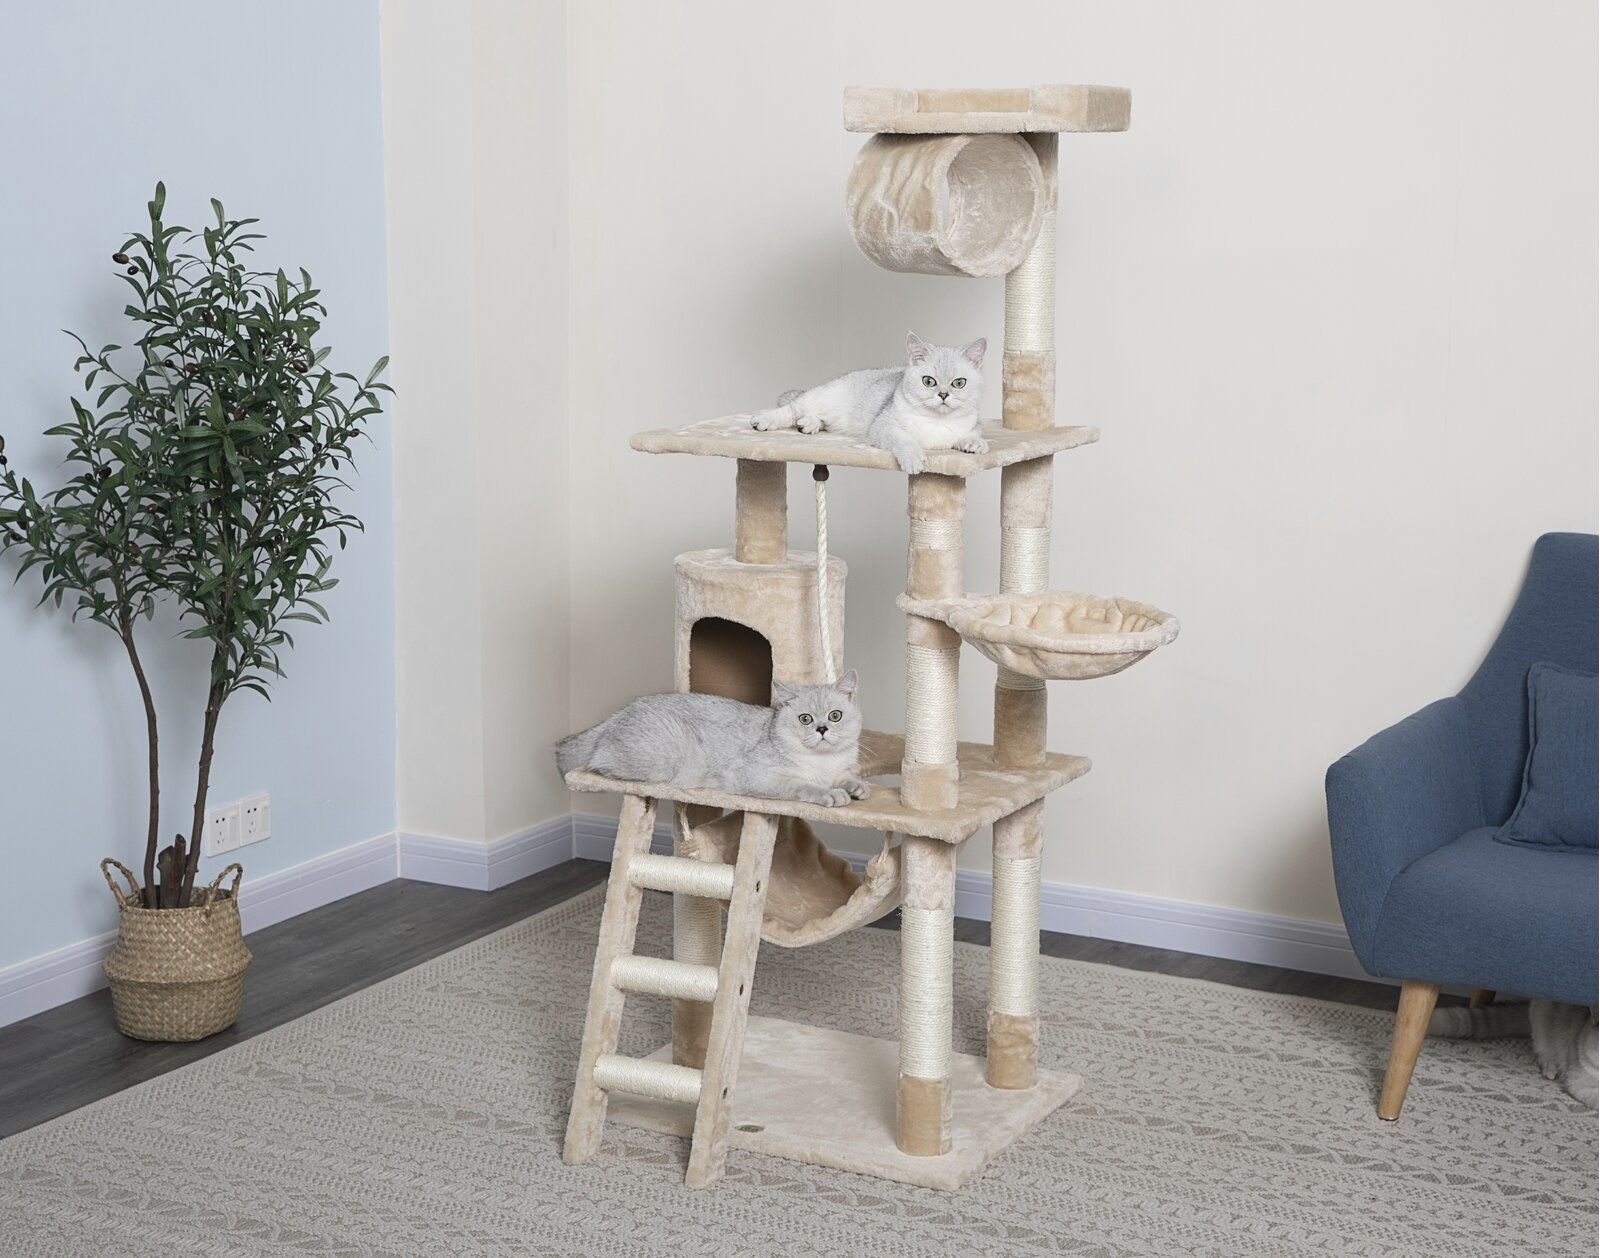 two cats on the cat tree in a living room